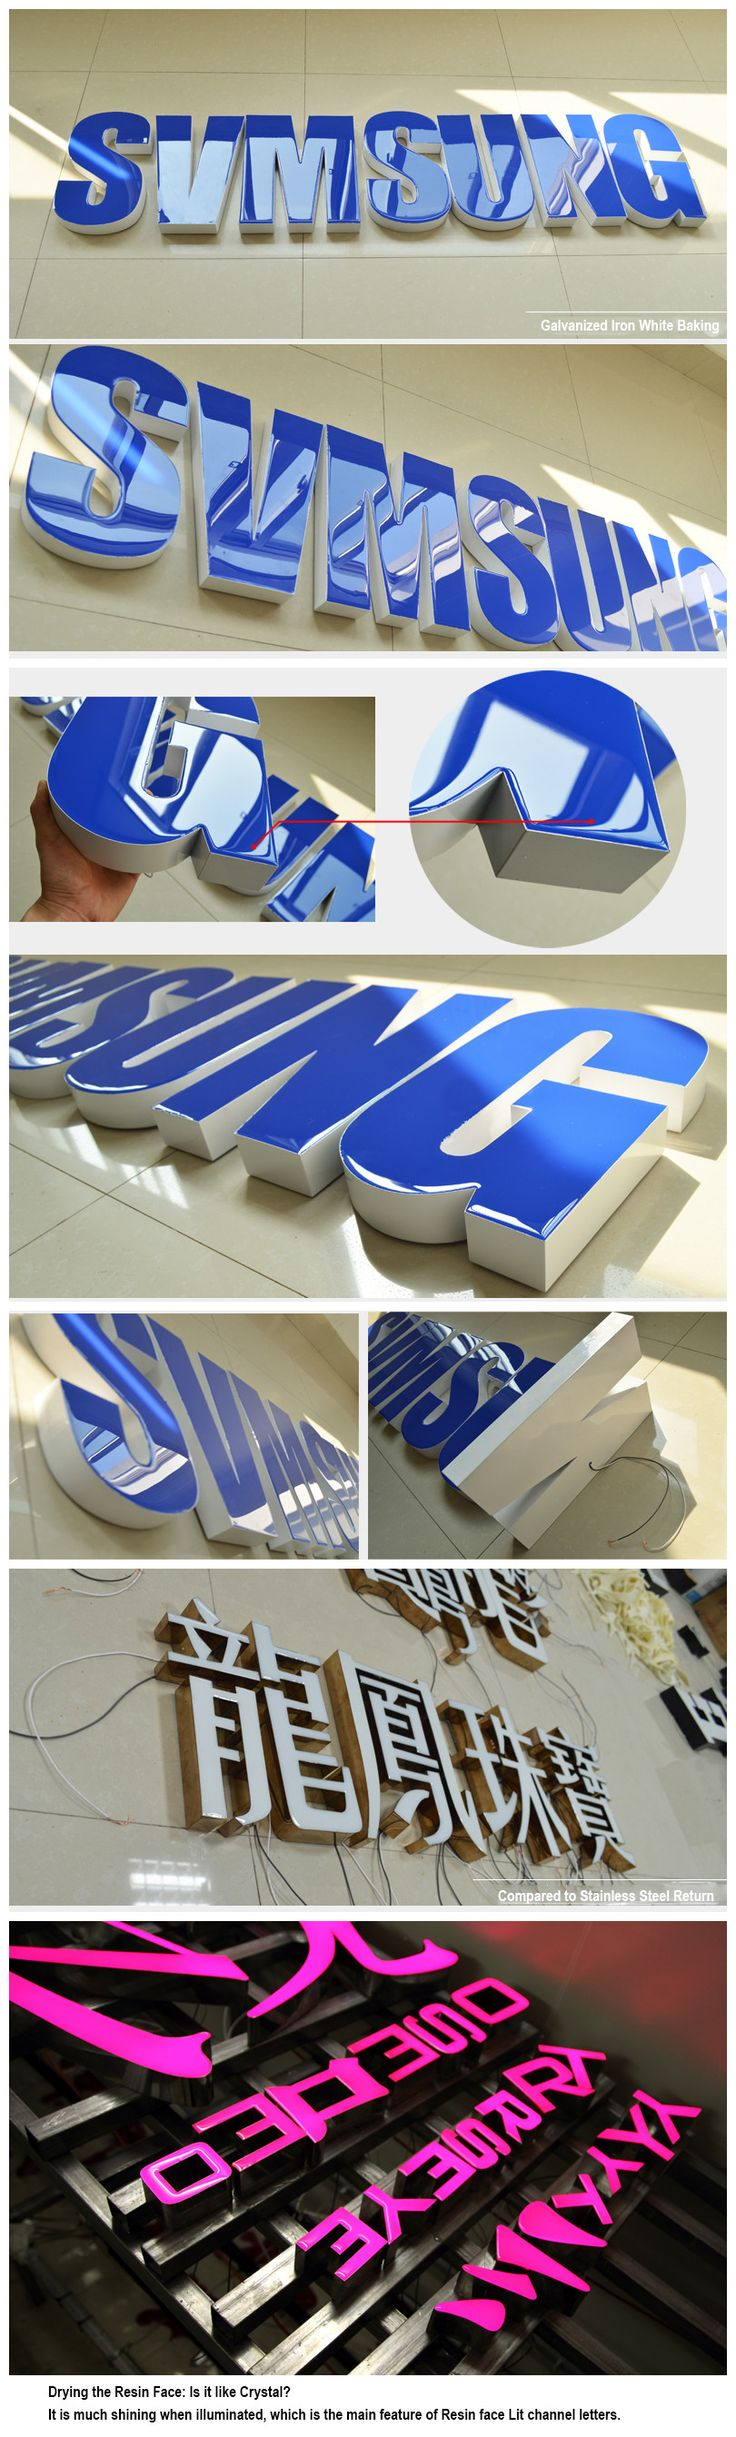 Blue Rimless illuminated Channel Letters Signage